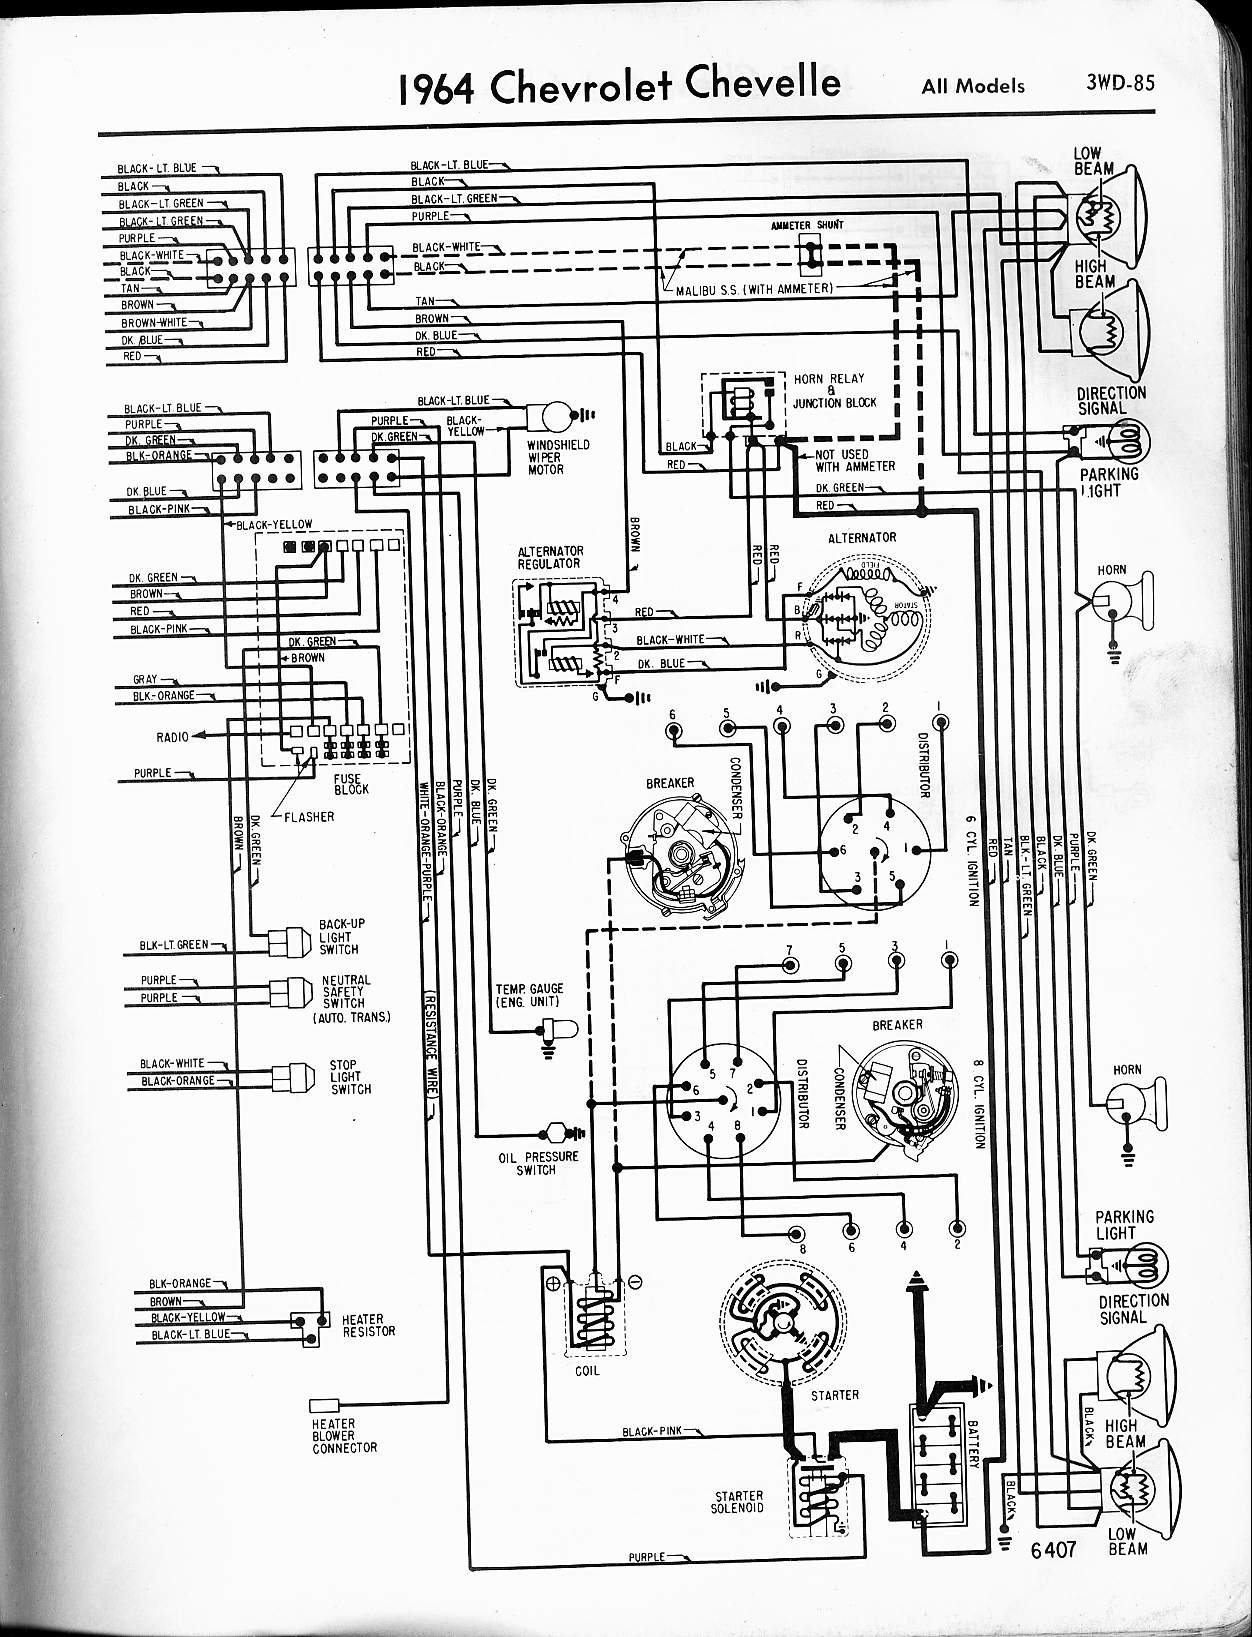 1999 Malibu Wiring Diagram | Wiring Diagram